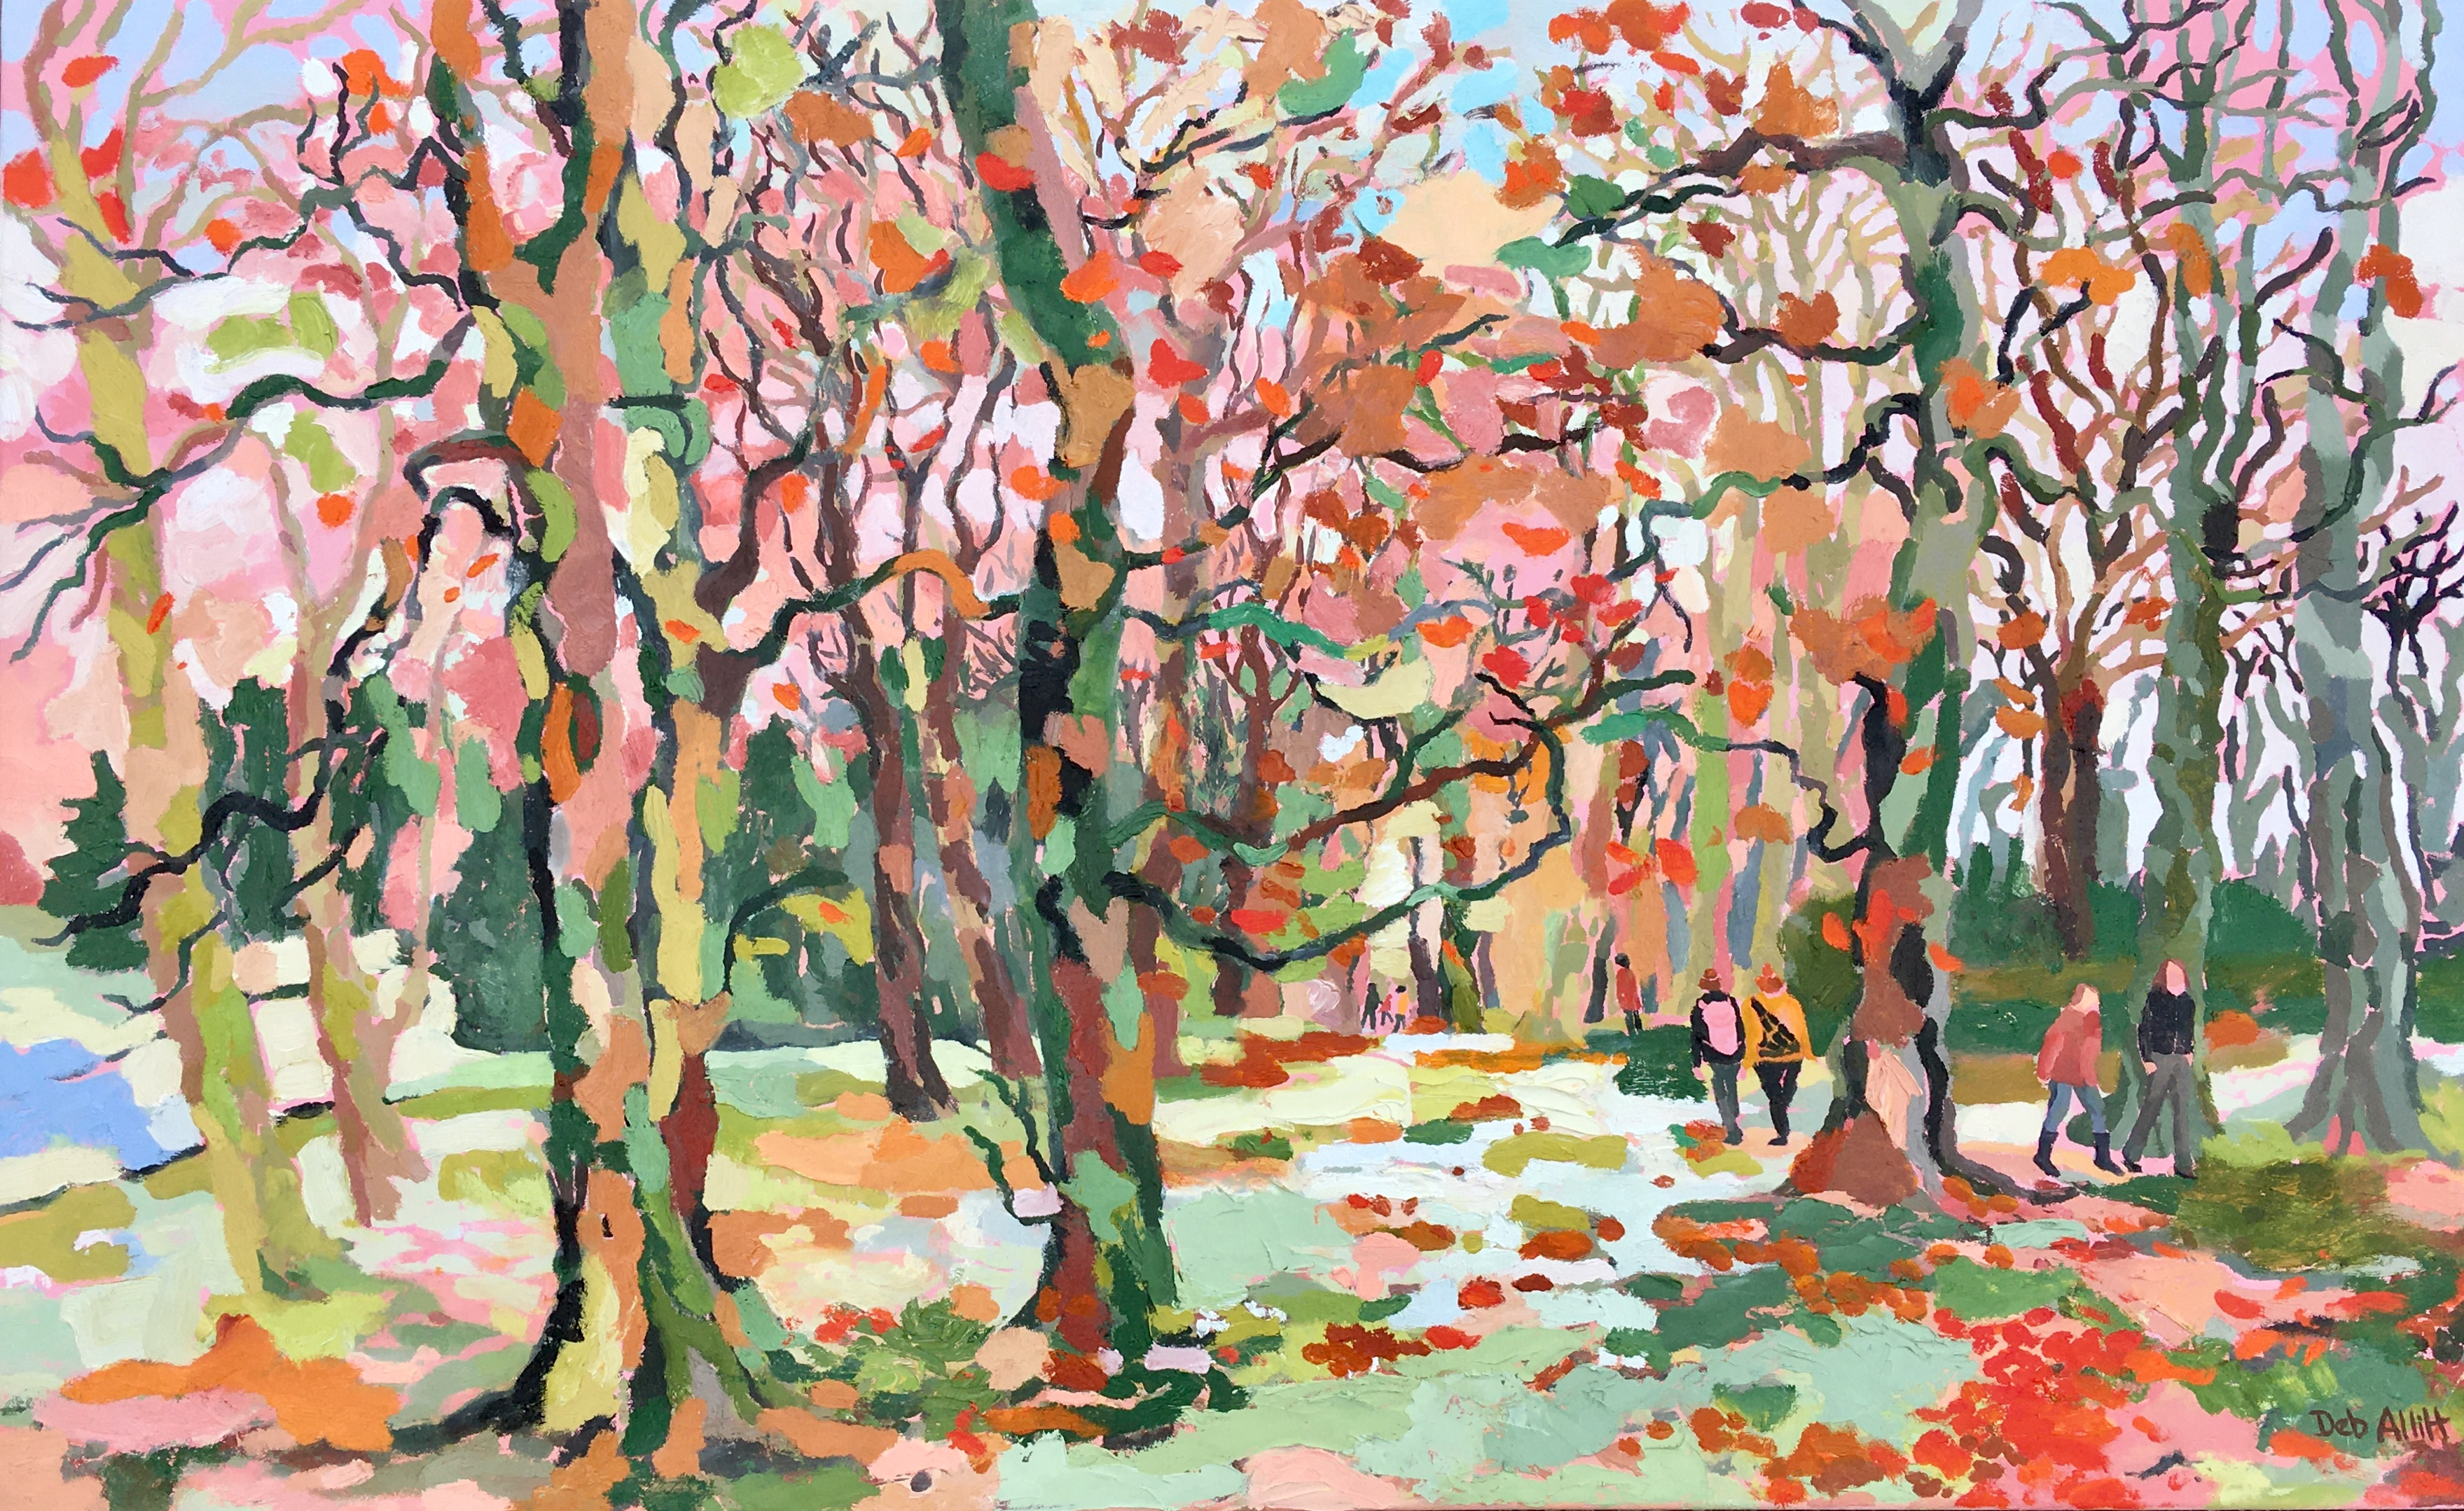 Autumn Colours in the Woods. Oil on canvas. 70 x 113 cm. Showing at Tarpey Gallery Winter Exhibition 5th December to 24th January